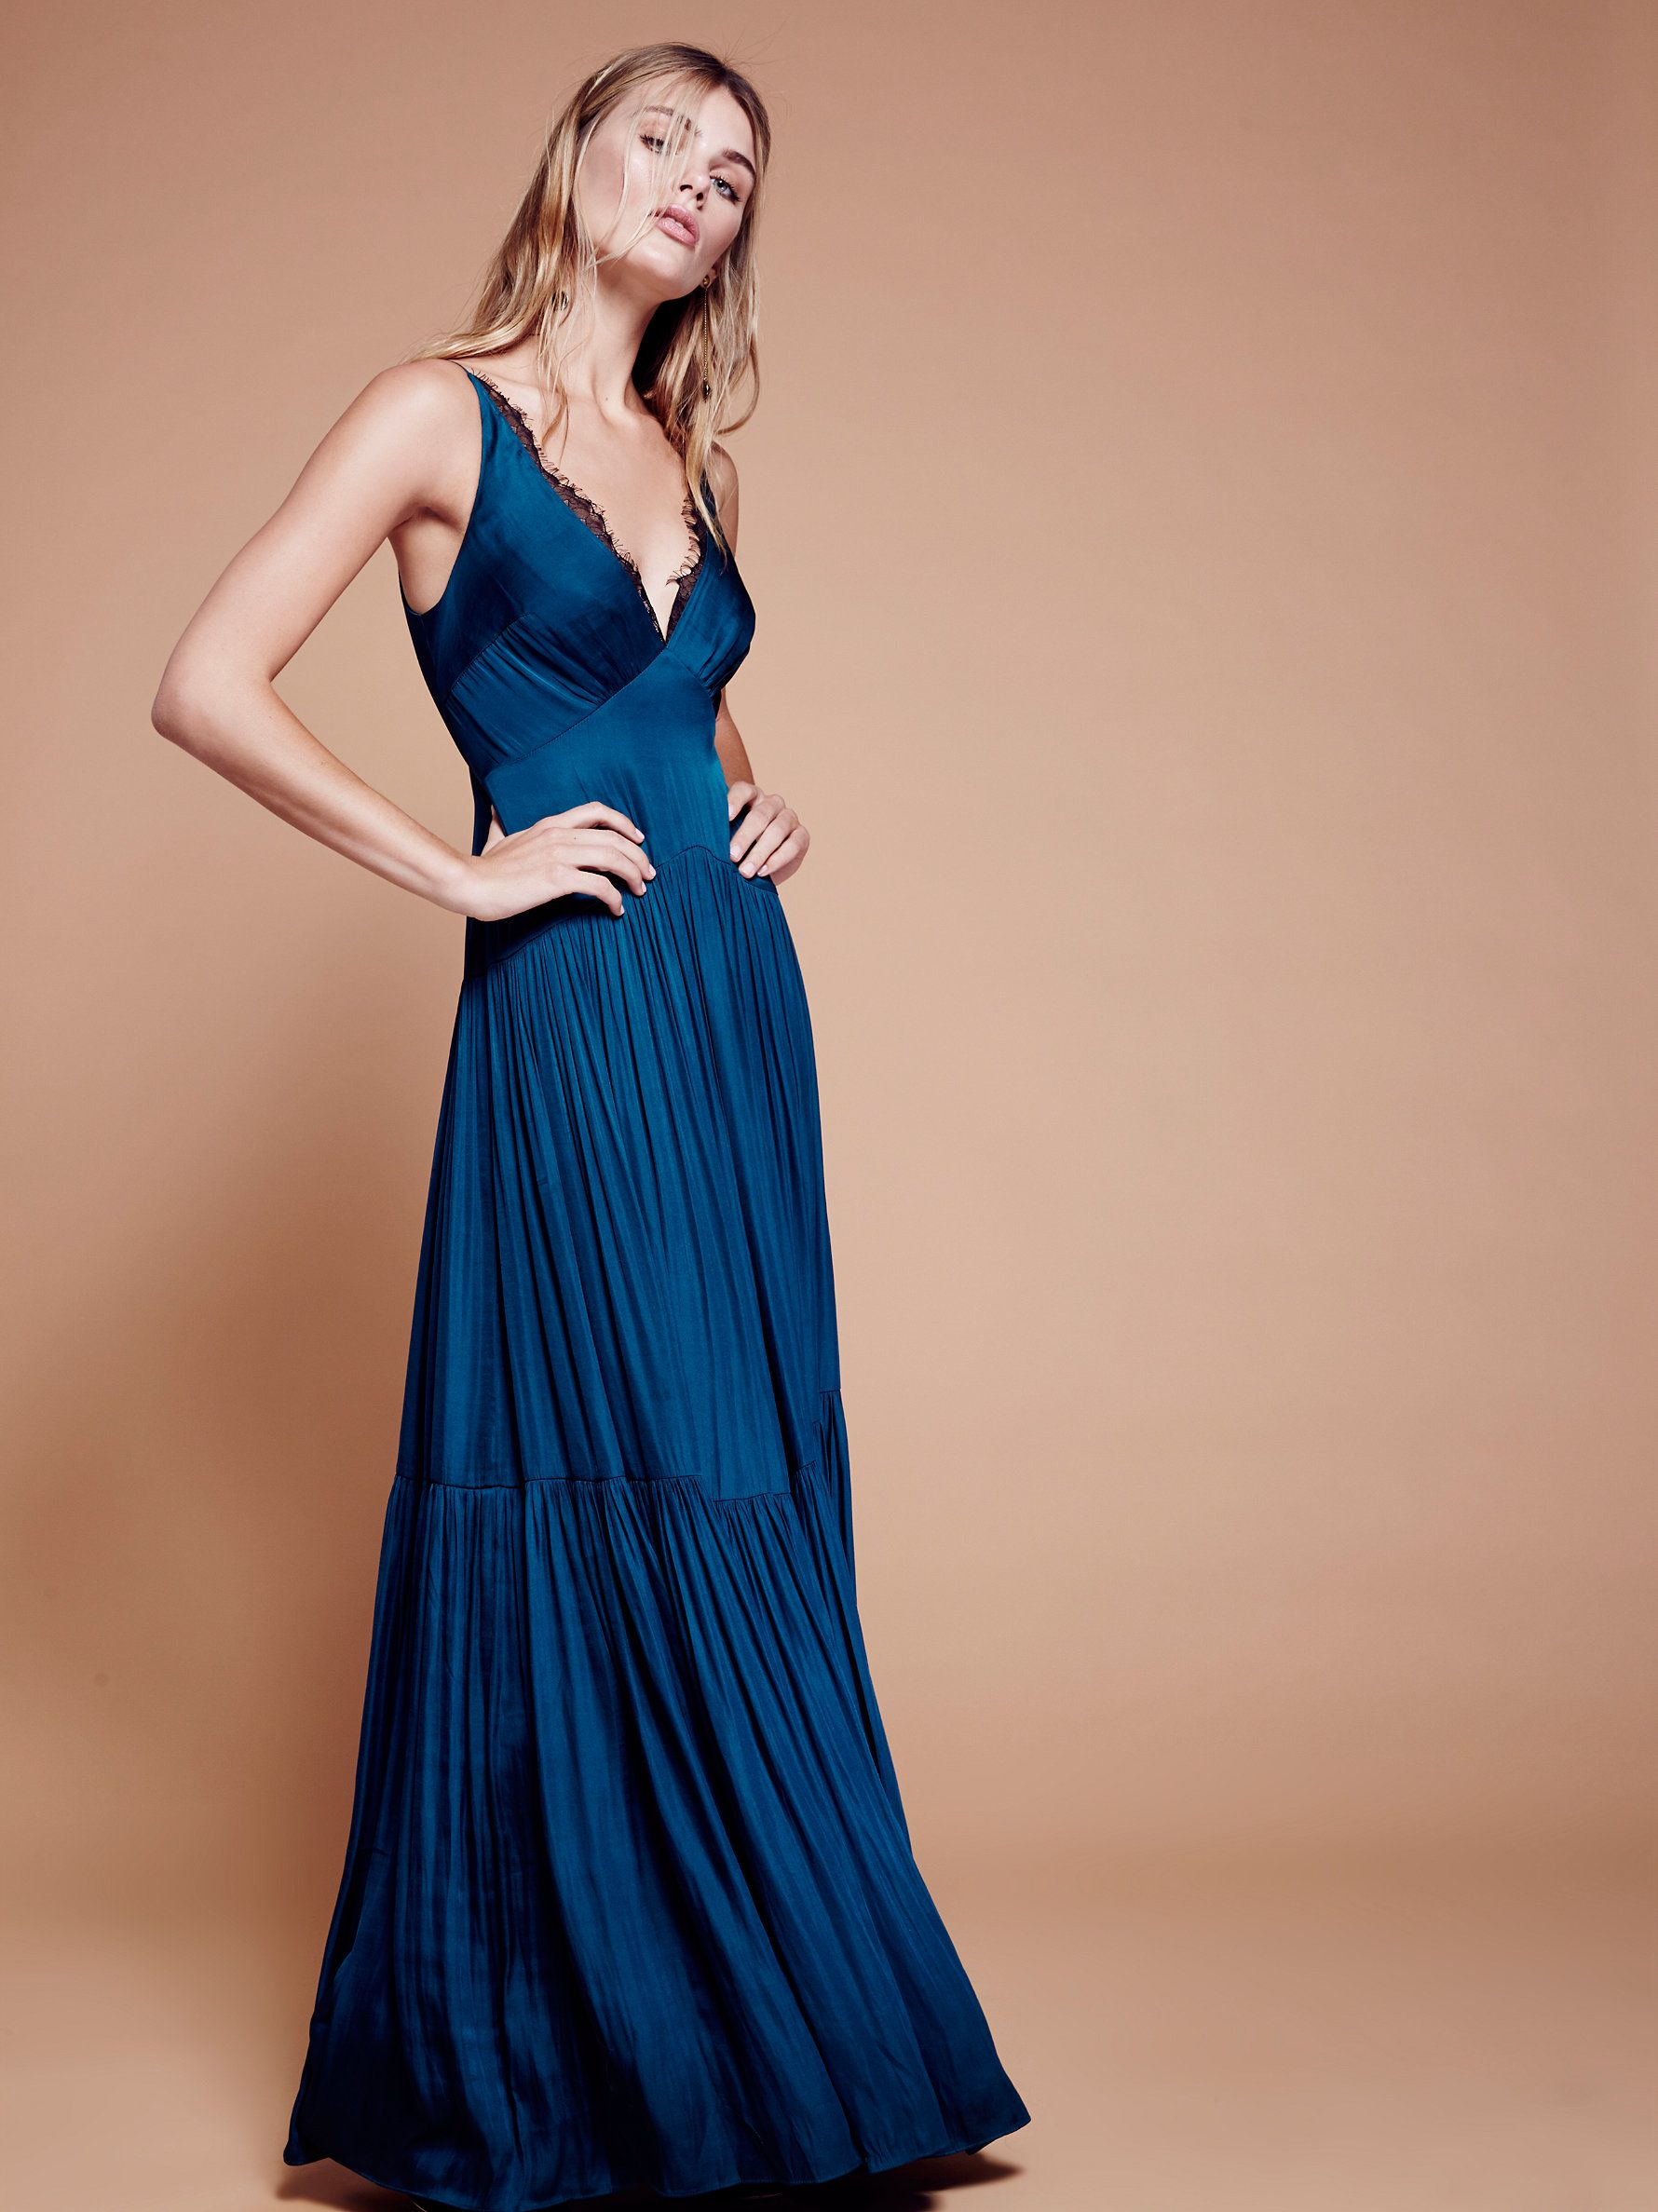 586ee9e566cf Eve Maxi Dress   Ultra femme maxi dress featuring delicate lace along the  plunging V-